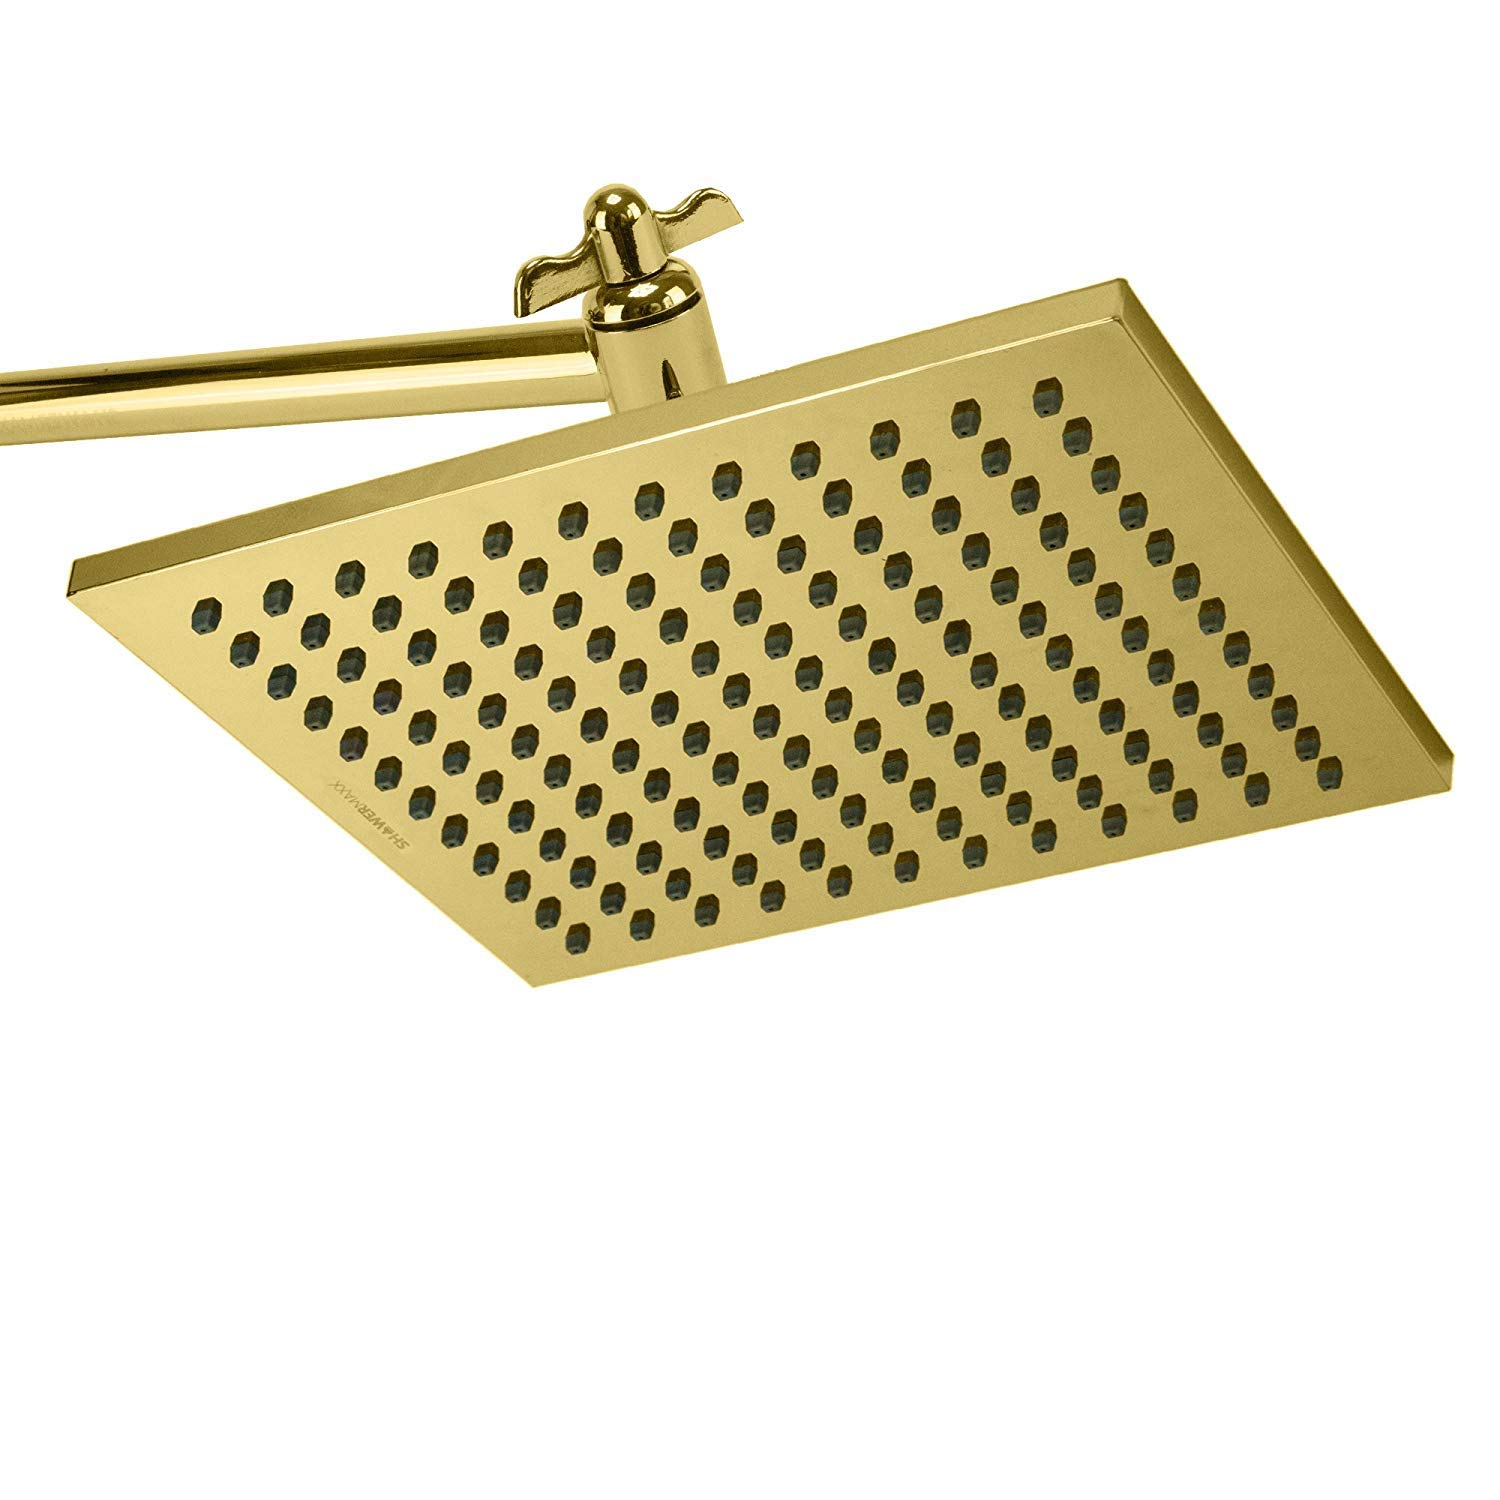 ShowerMaxx, Elite Series, 8 inch Square High Pressure Rainfall Shower Head, MAXX-imize Your Rainfall Experience with Easy-to-Remove Flow Restrictor Rain Showerhead, Polished Brass Gold Finish